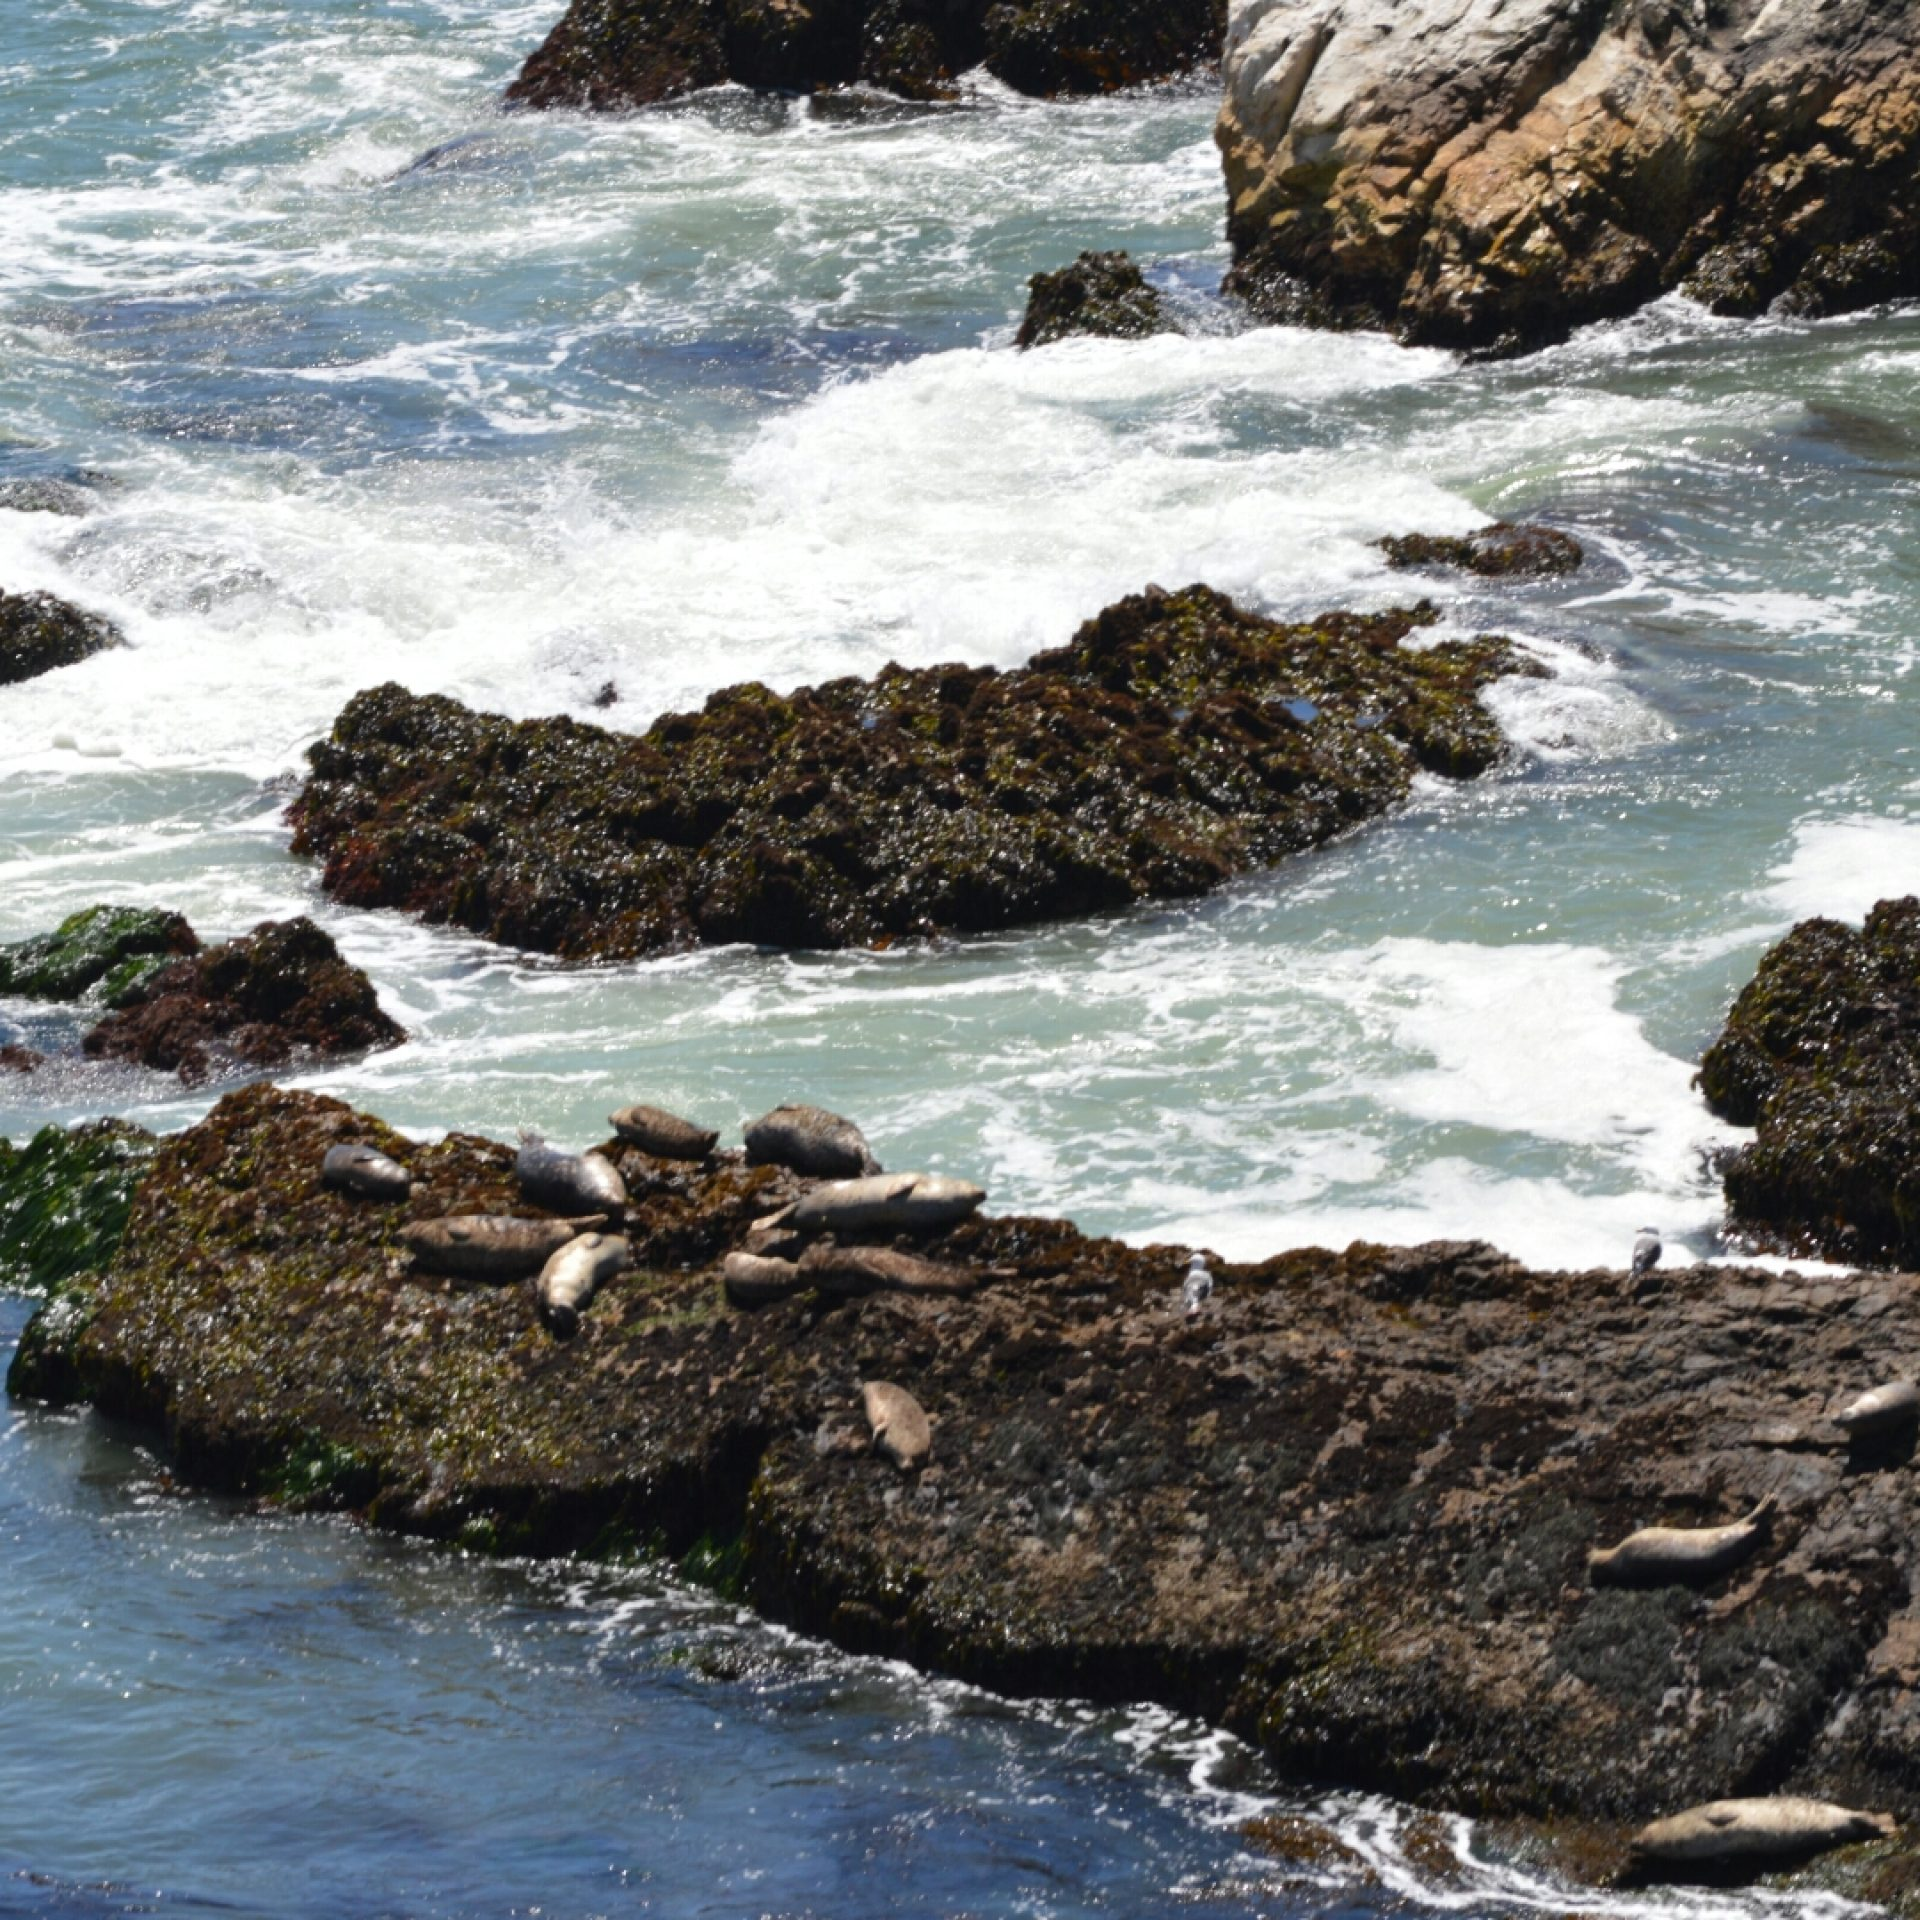 Seals rest on rocky coastline